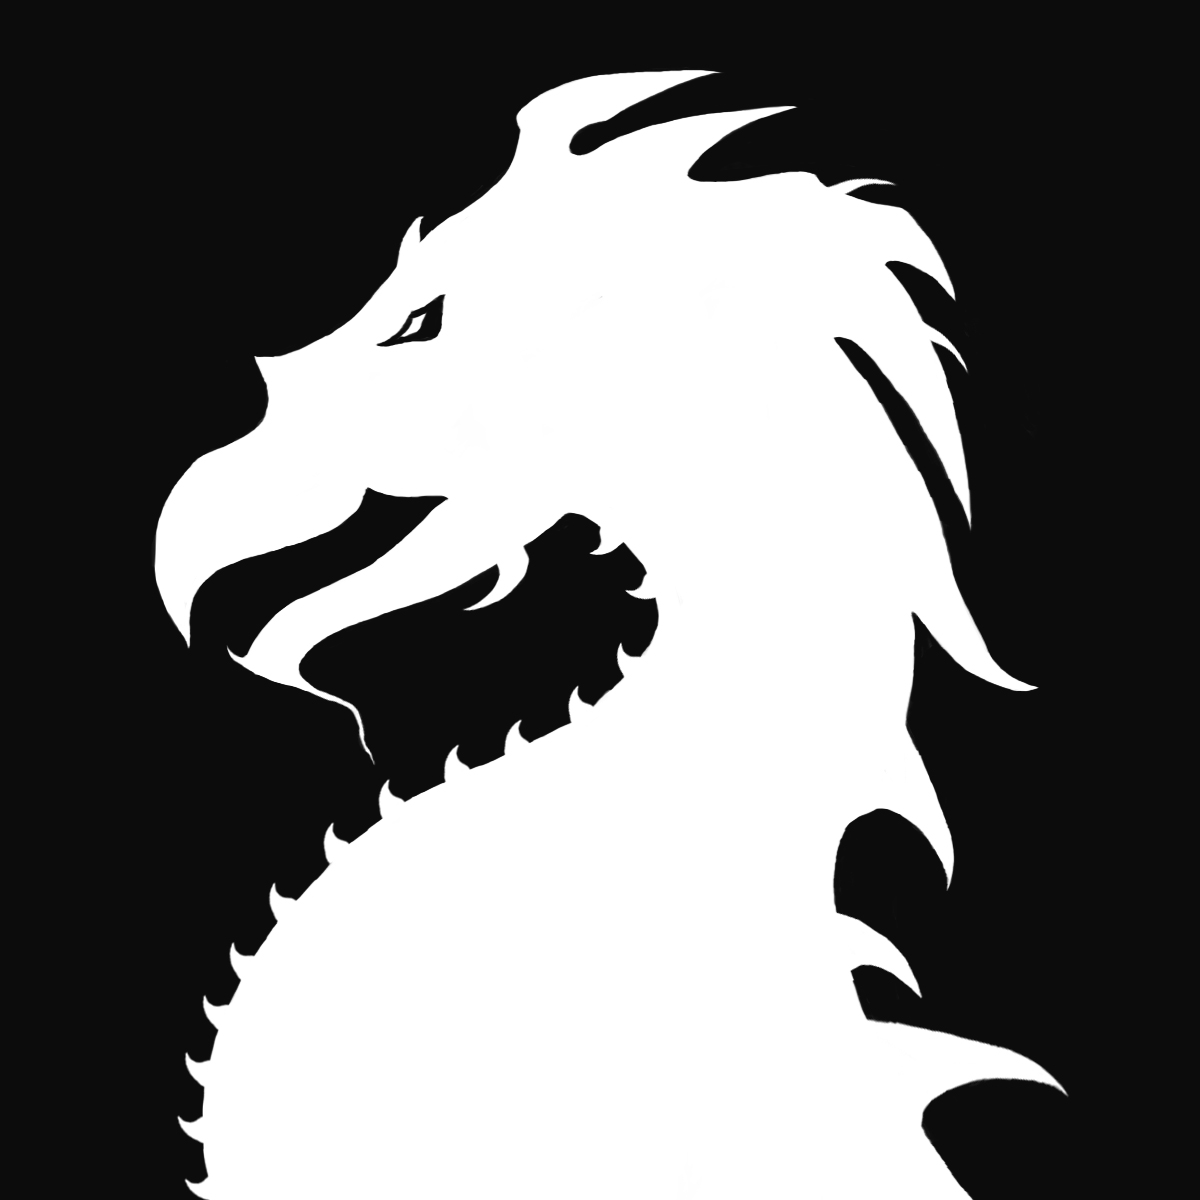 Dragon Silhouette Related Keywords & Suggestions - Dragon ...